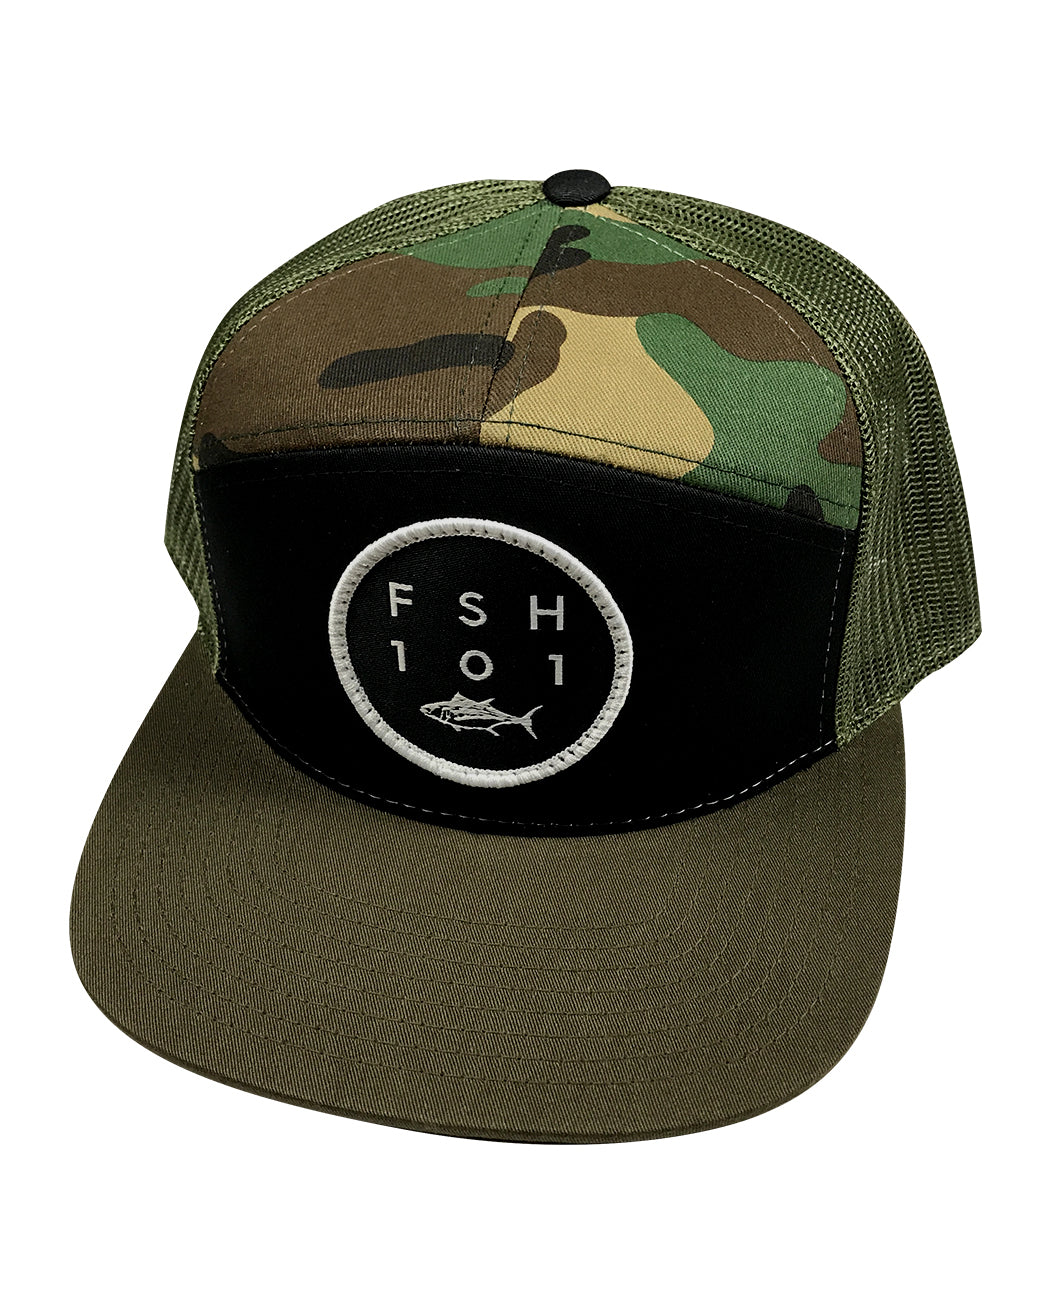 ced80096e73 Fish 101 Camo 7 Panel Hat | Fish 101 Restaurant